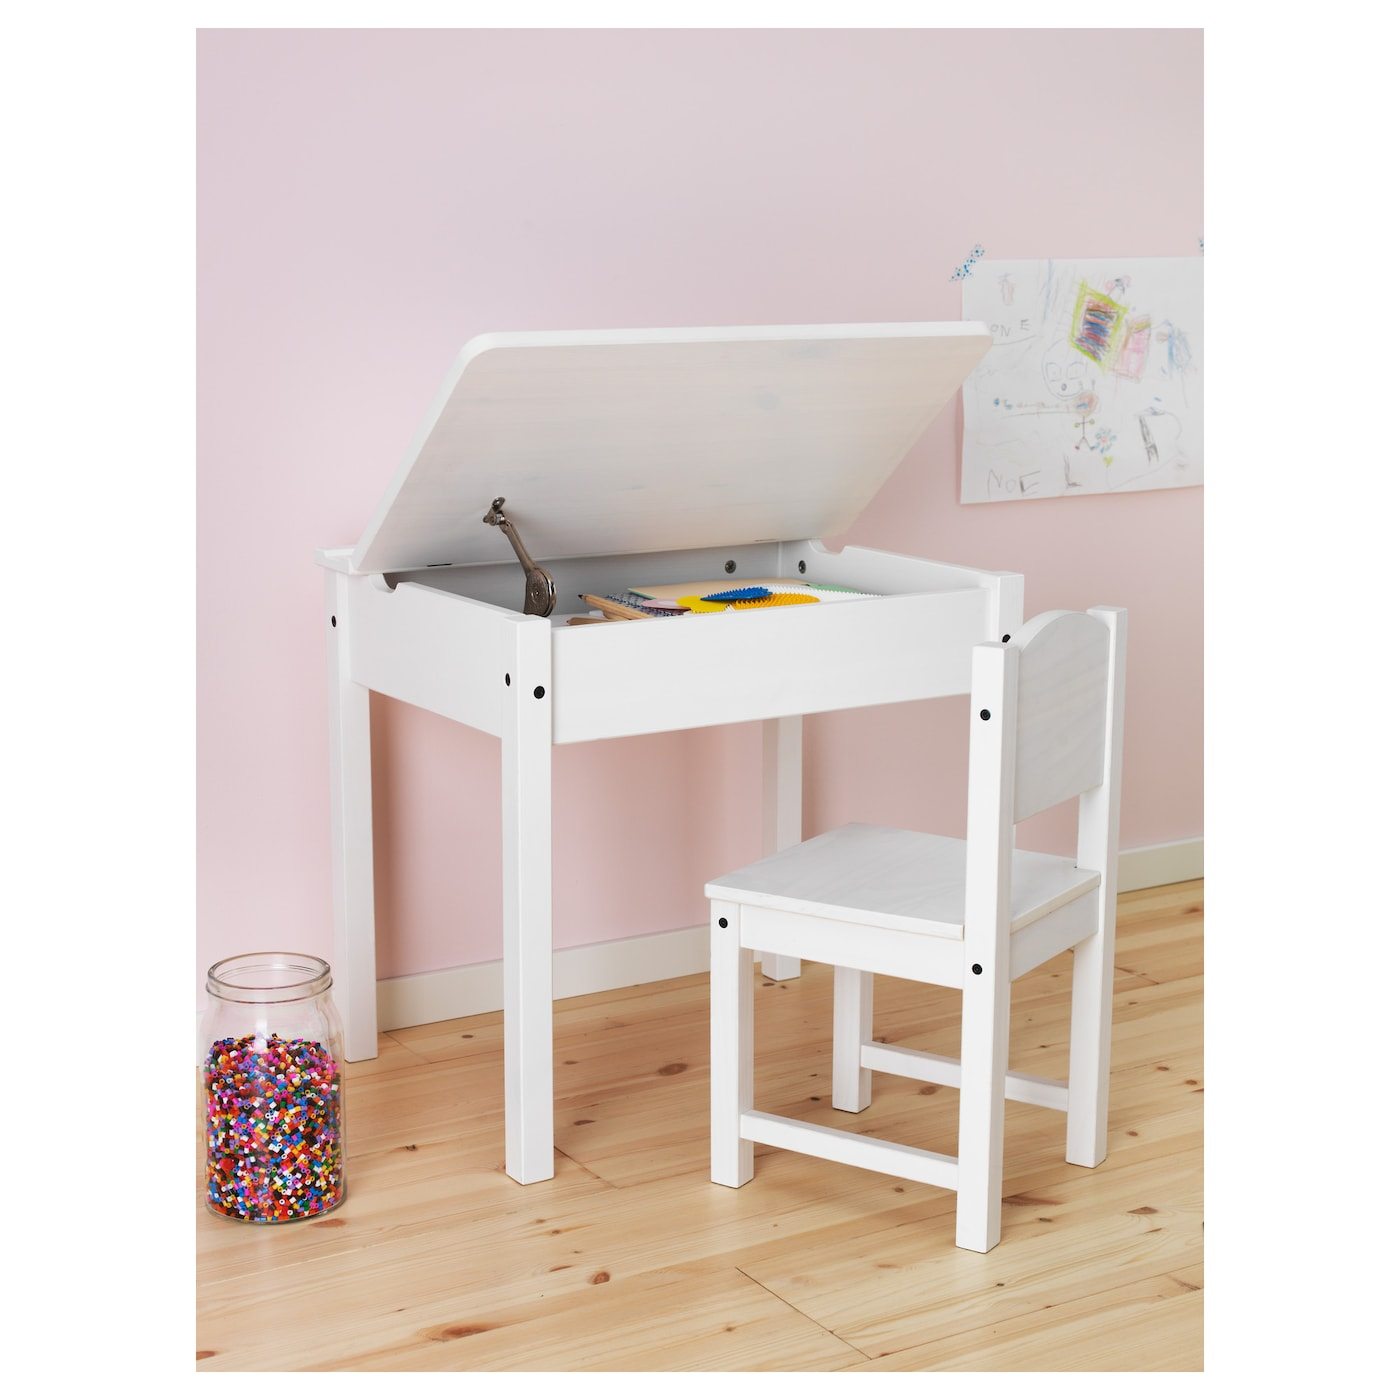 Design Kids Desk sundvik childrens desk white 58x45 cm ikea desk